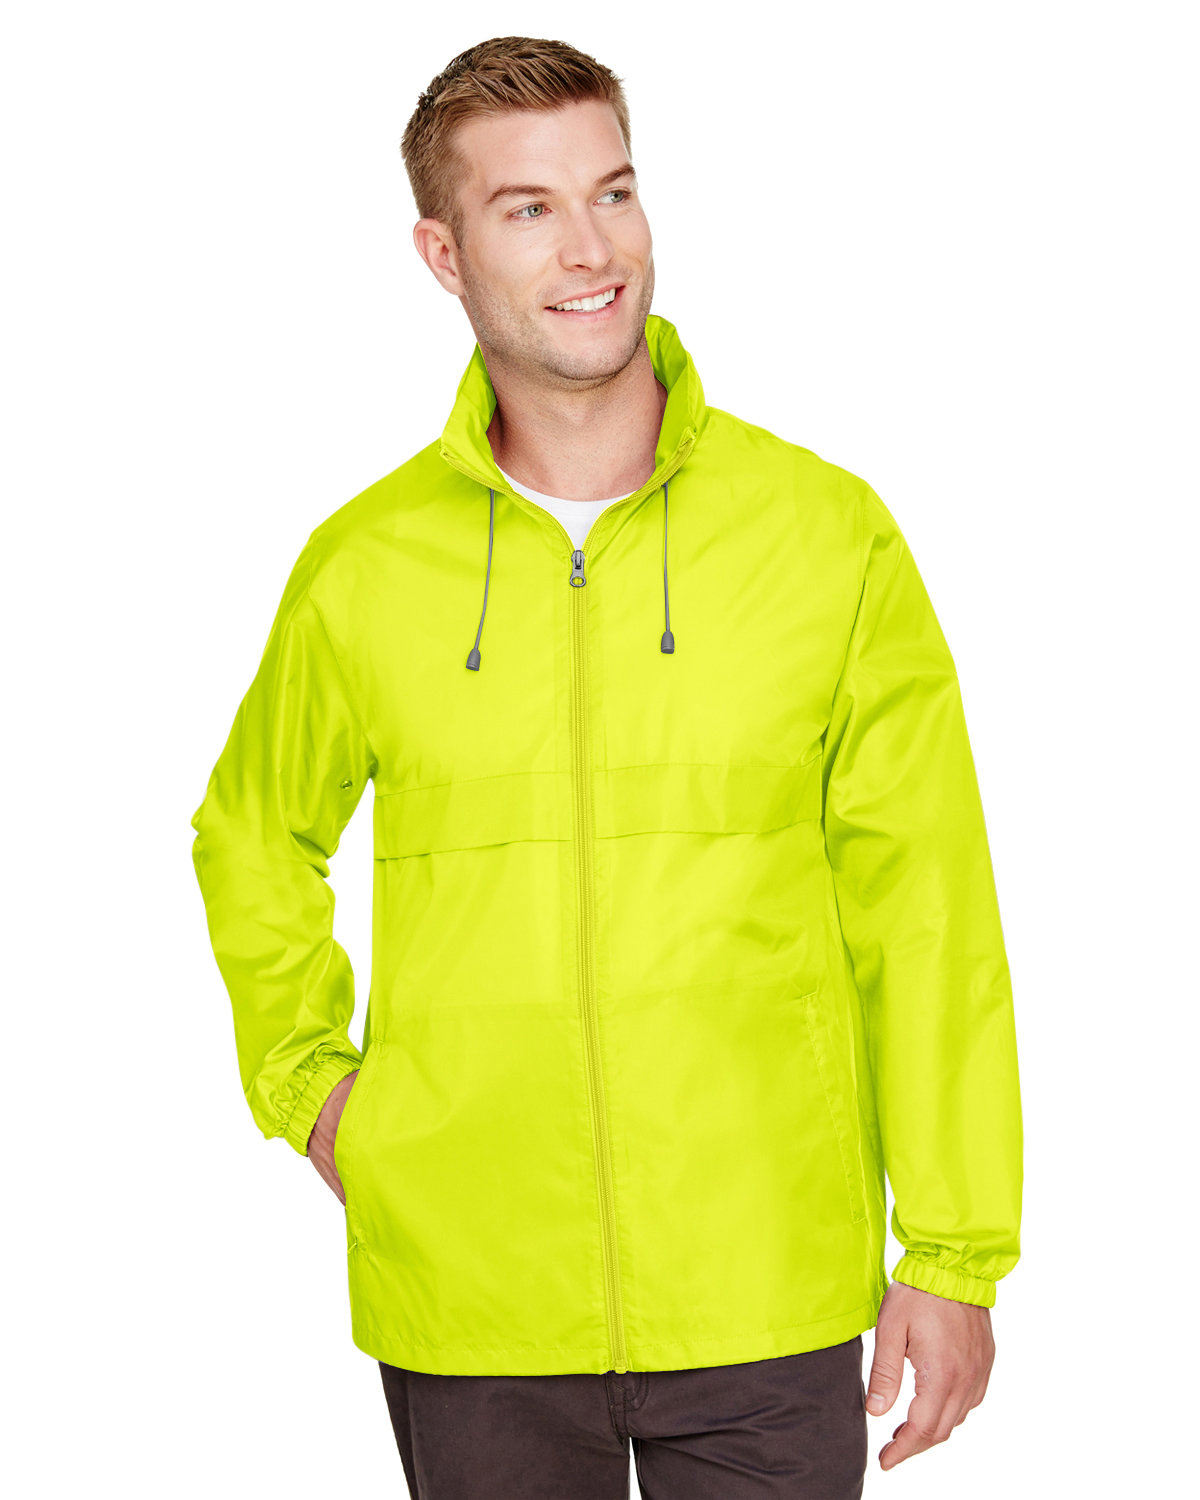 Team 365 Adult Zone Protect Lightweight Jacket SAFETY YELLOW